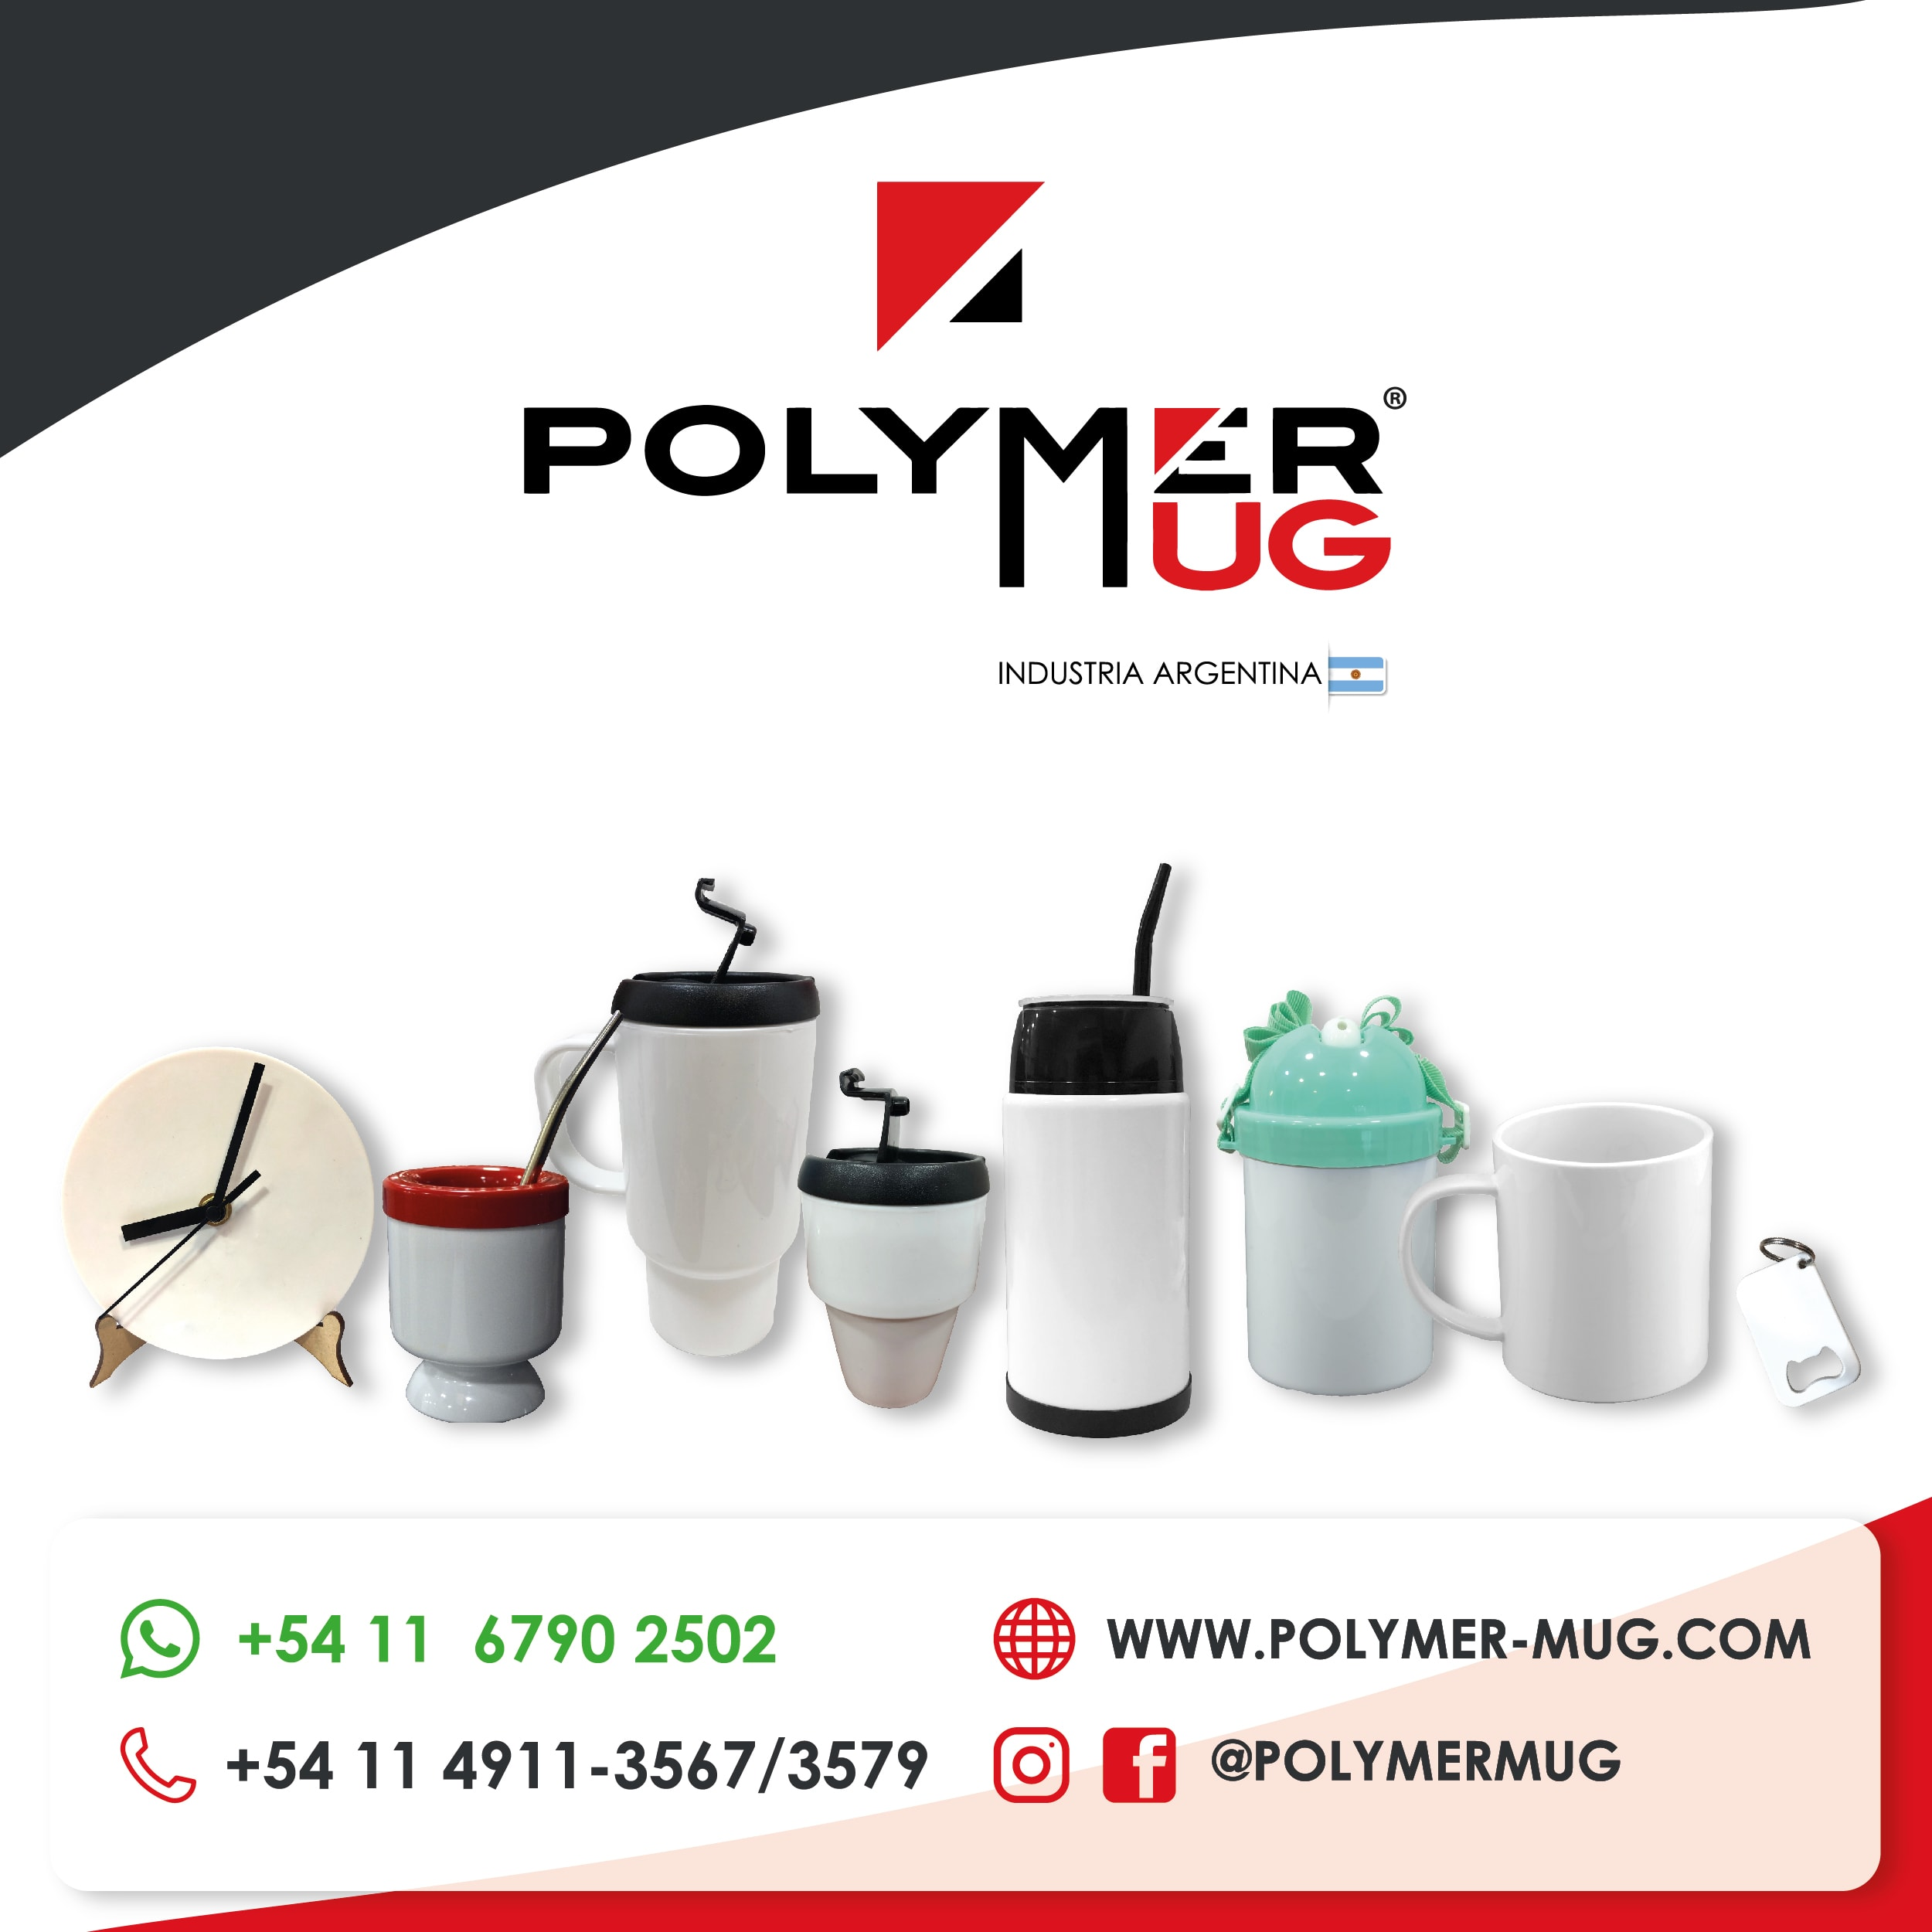 Polymer_Fes_Redes